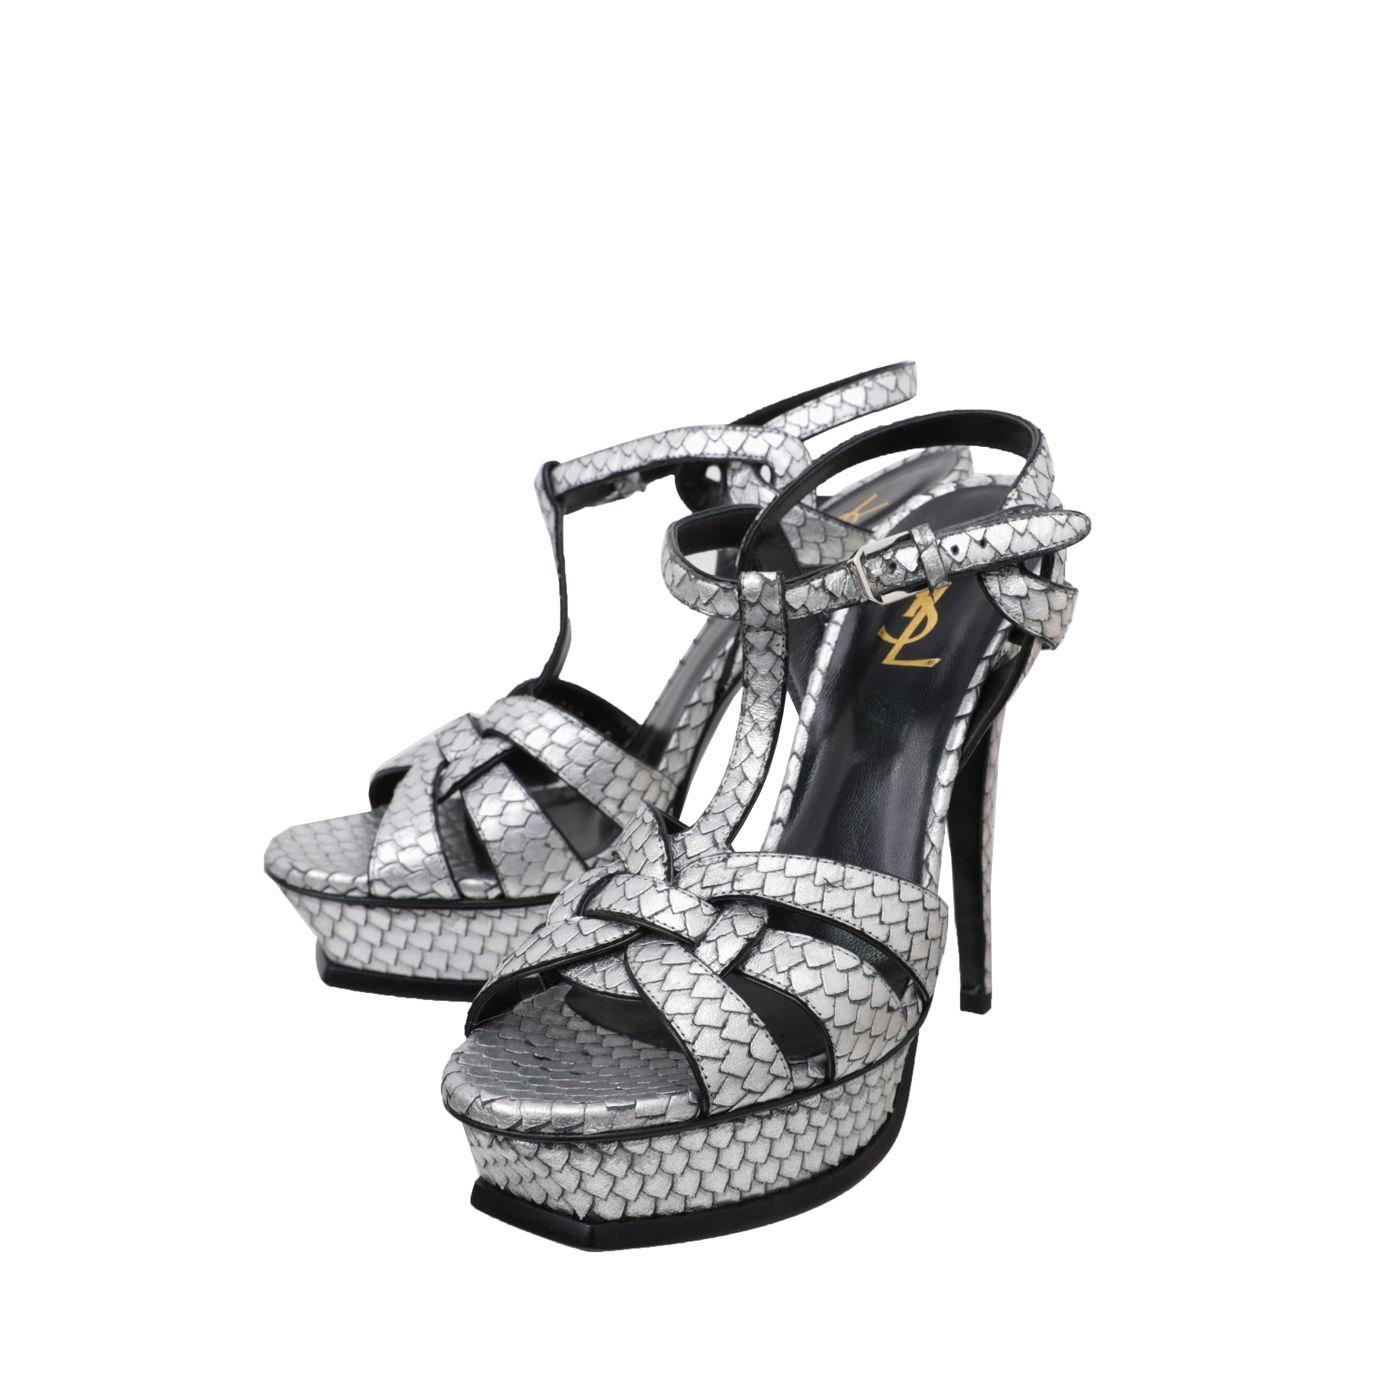 YSL Silver Python Stamped Tribute High Heels Sandals 39.5